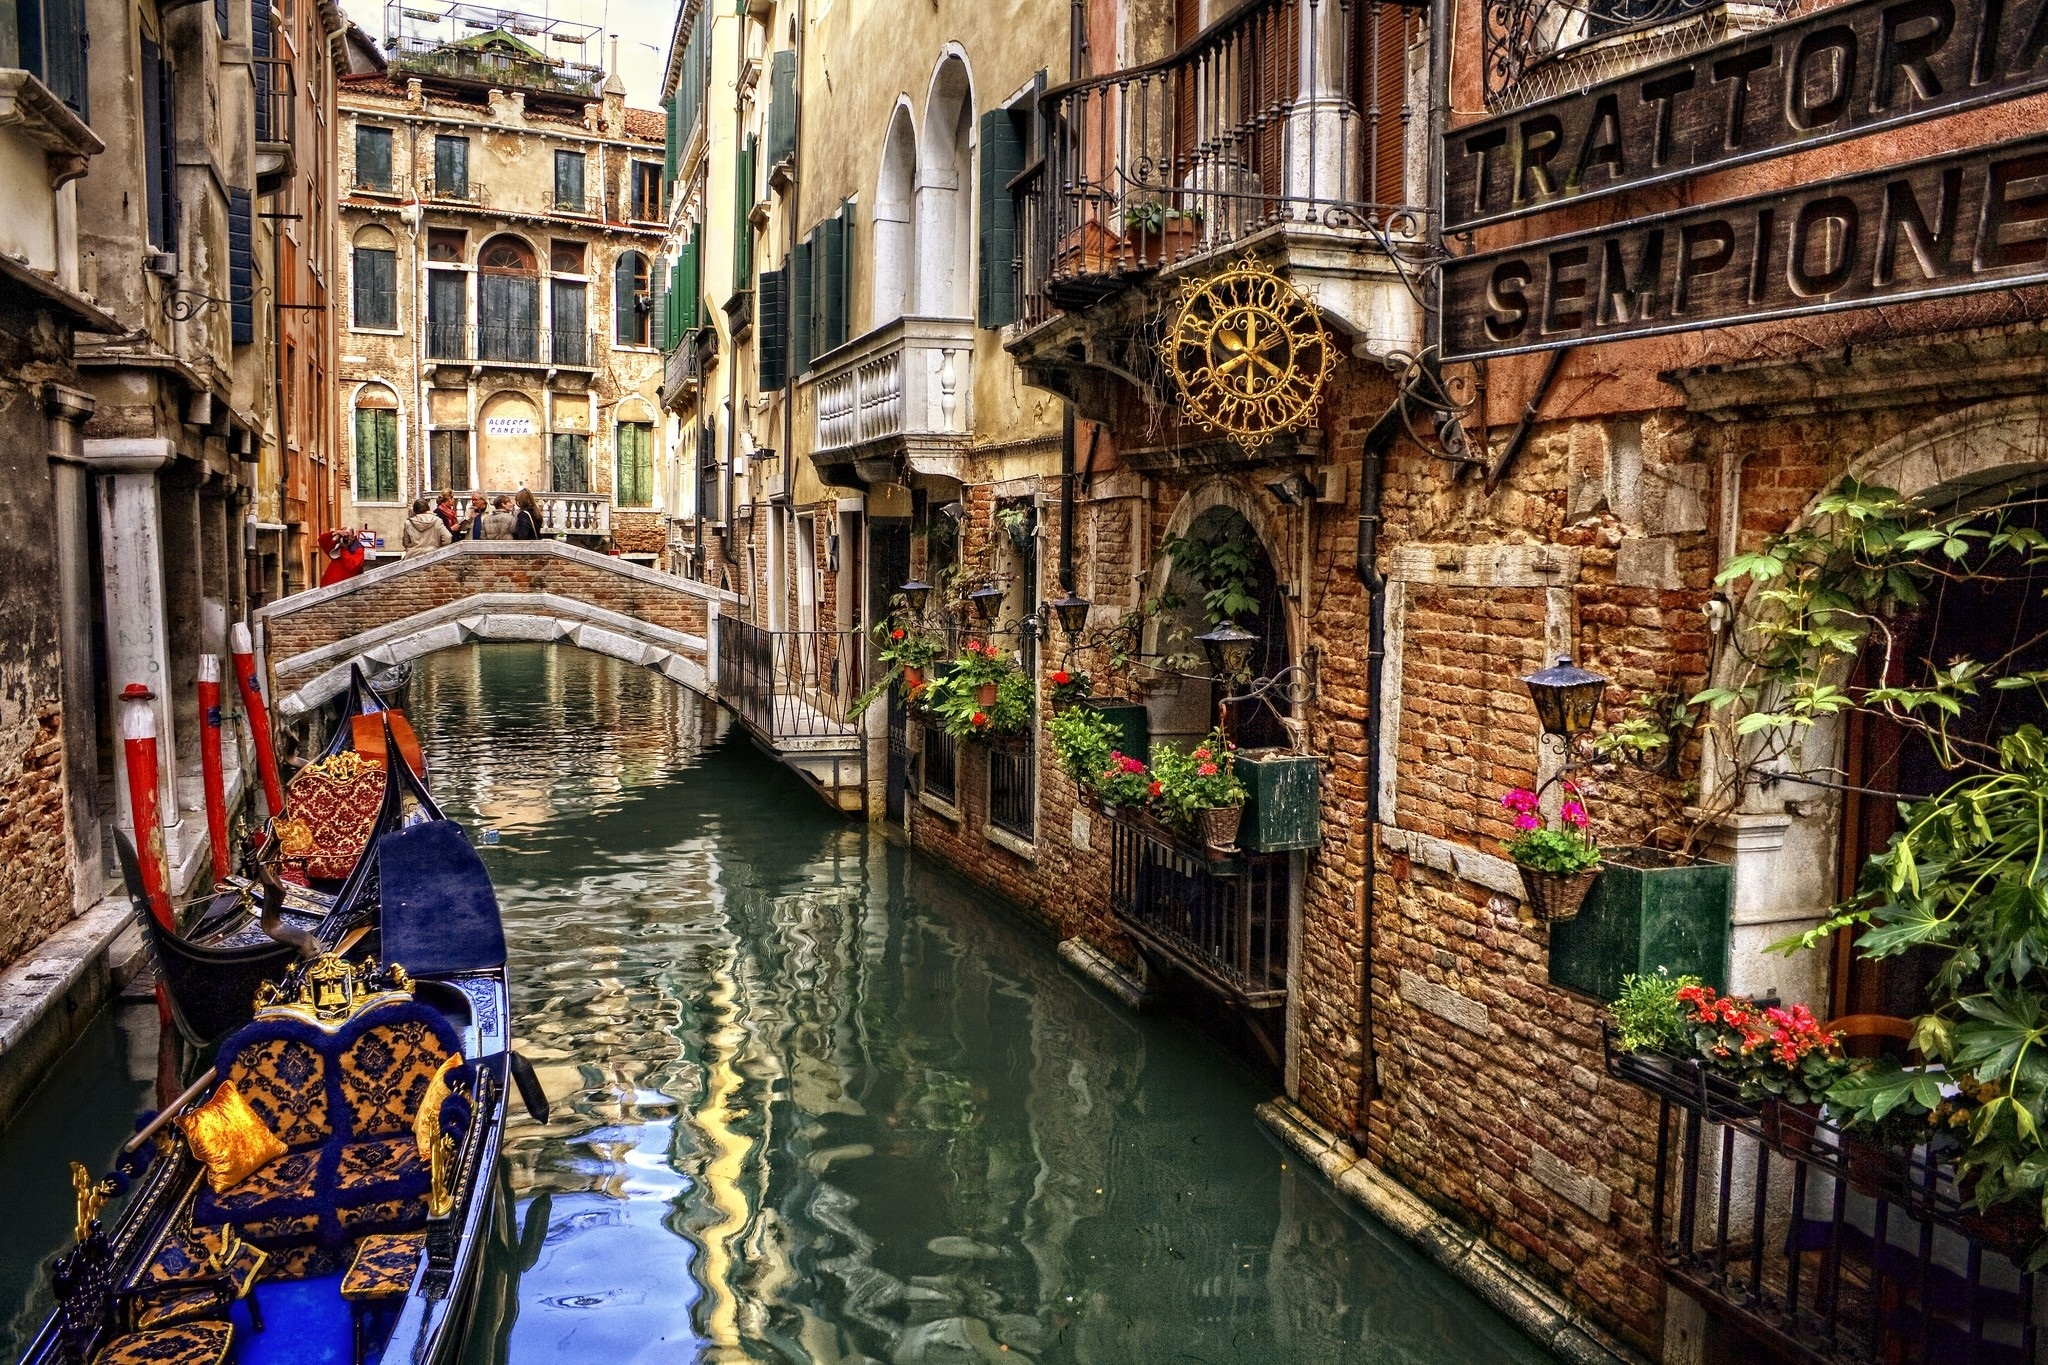 The romantic and magical Venice, Italy